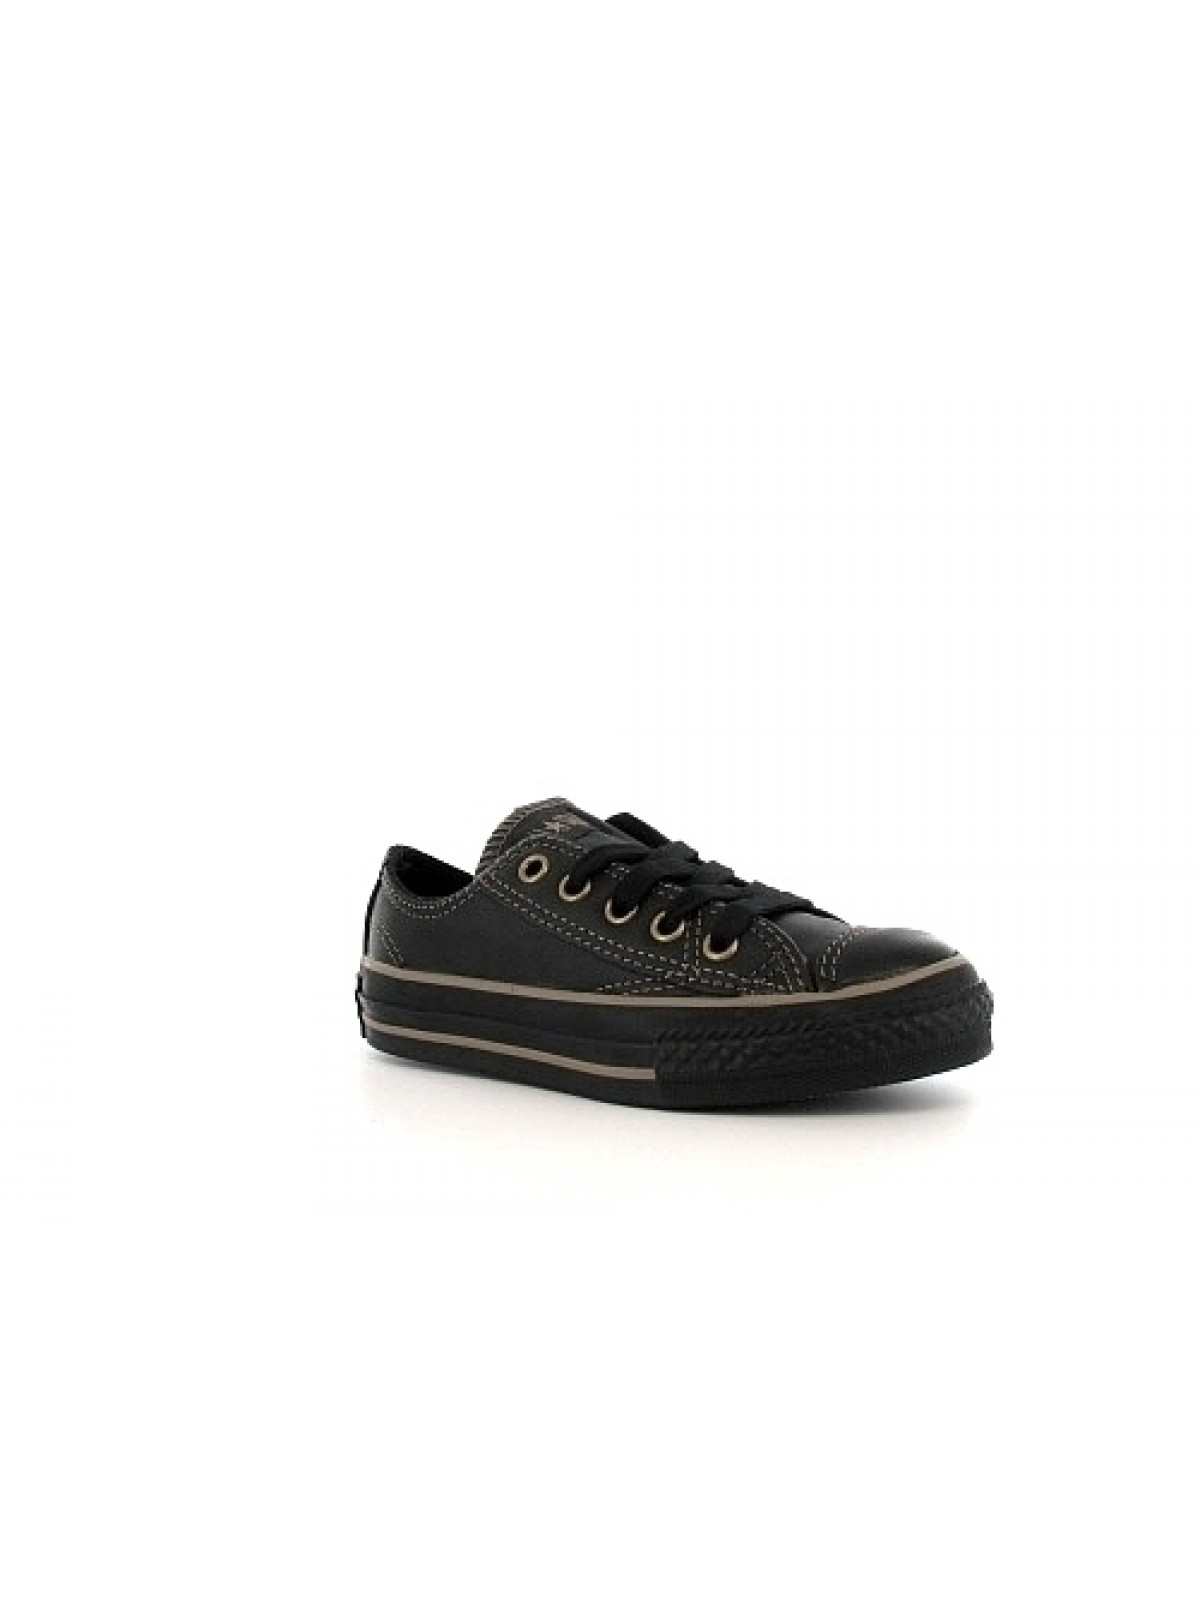 Converse Chuck Taylor all star junior cuir basse soft noir